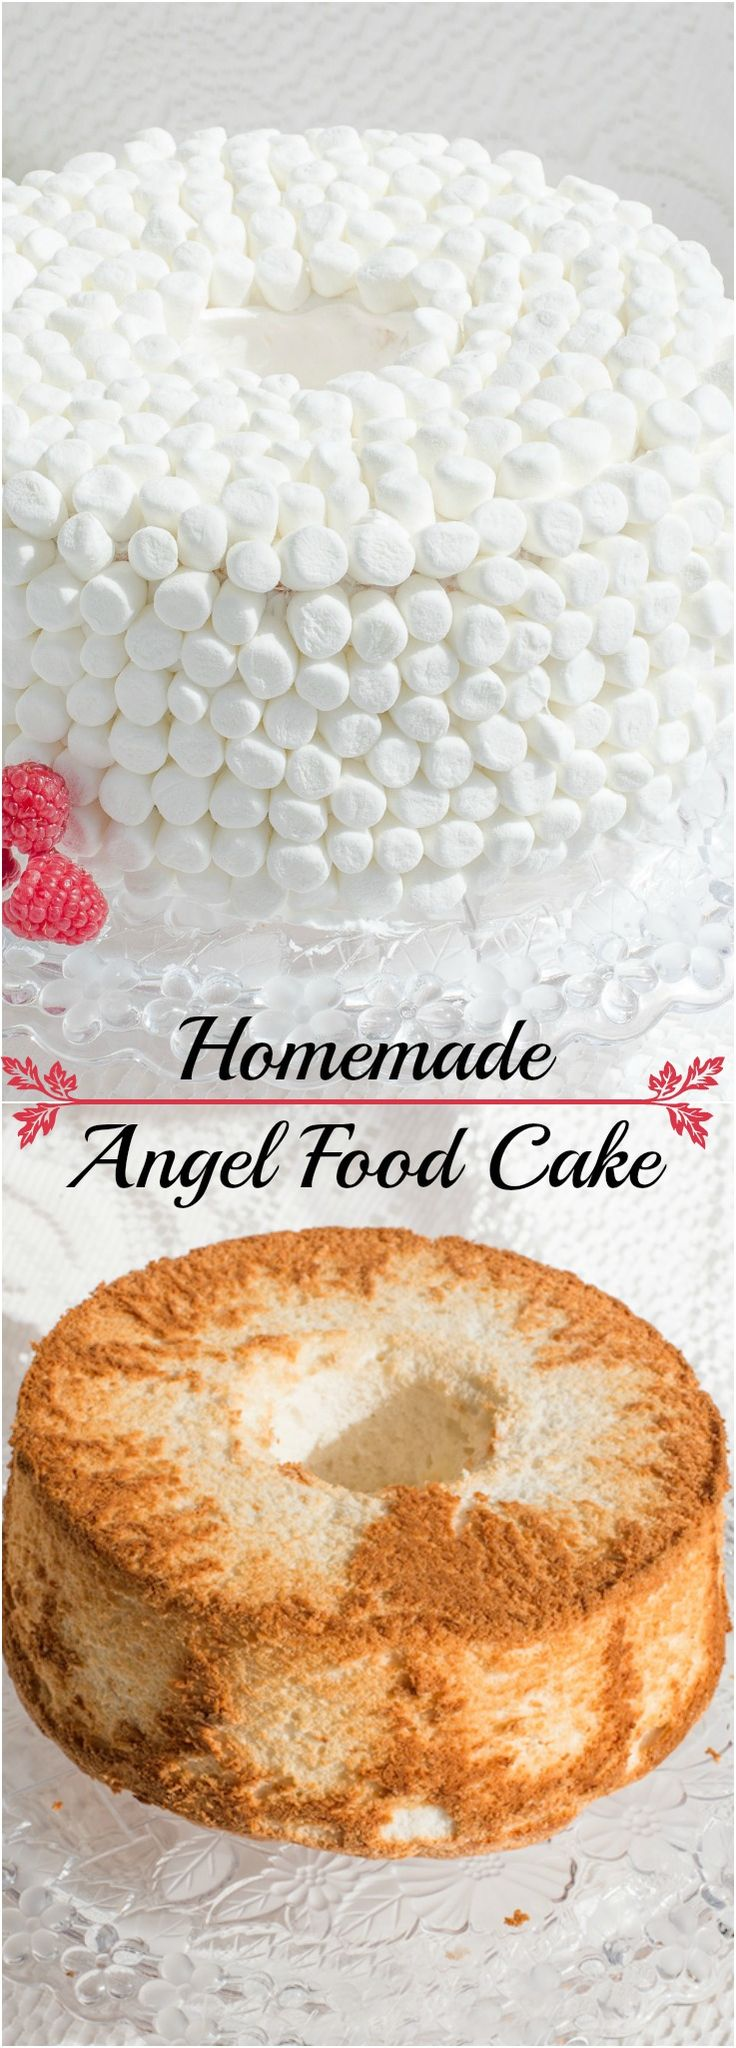 Homemade Angel Food Cake is so light and fluffy, tastes amazing you may never buy a box mix again! Decorate with mini marshmallow and buttercream frosting.